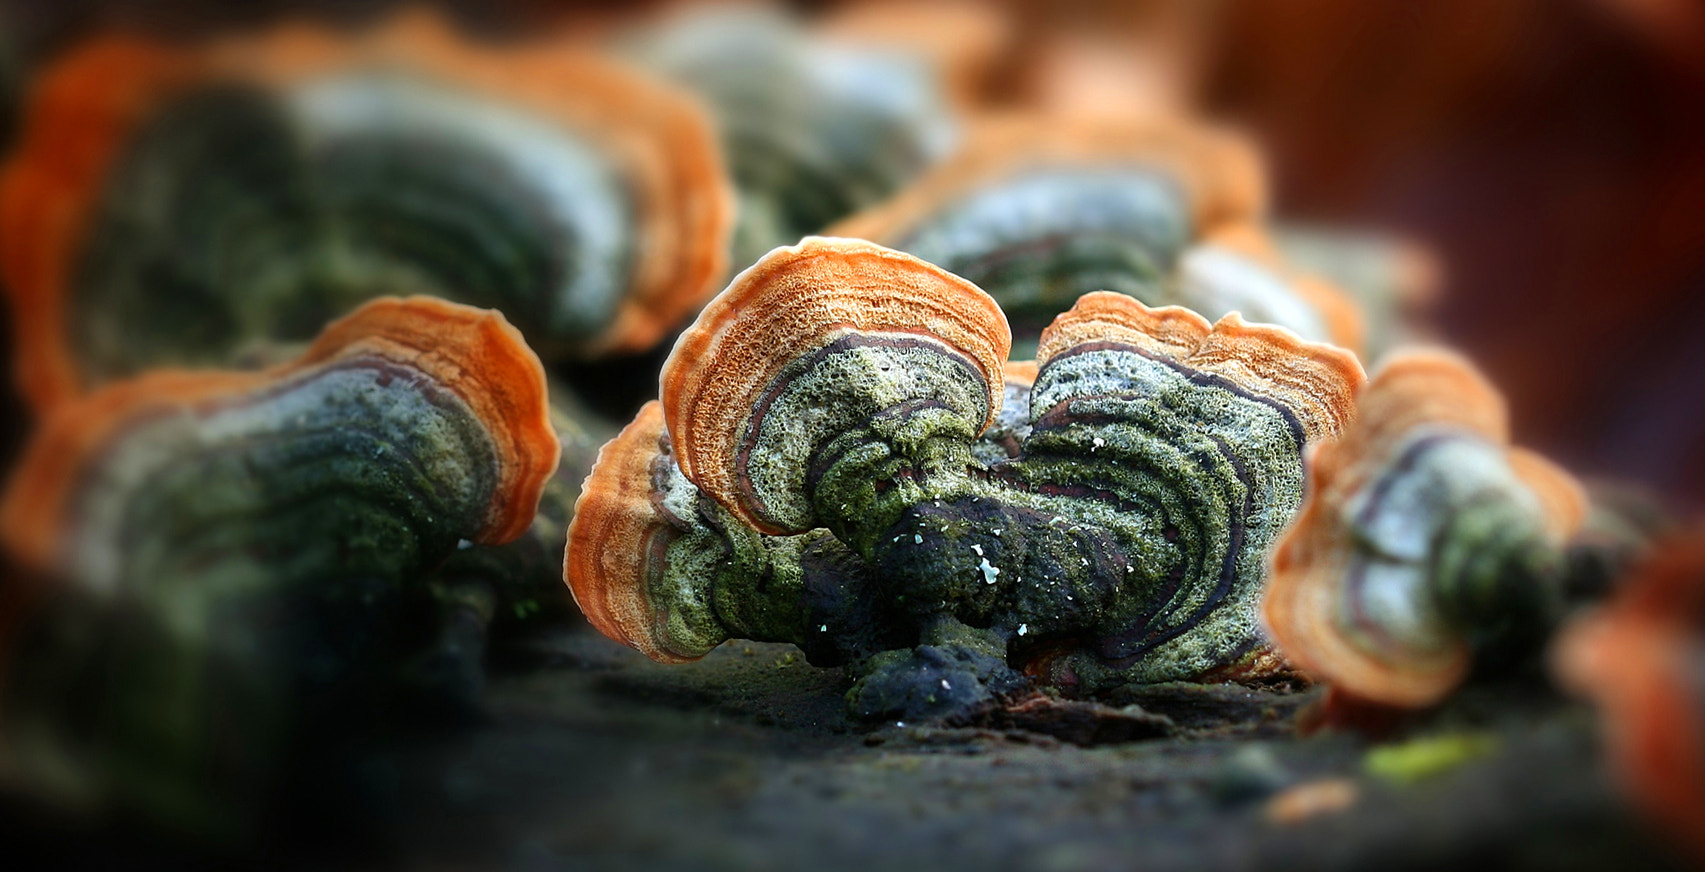 Photograph Trametes versicolor by Justino  Diez on 500px